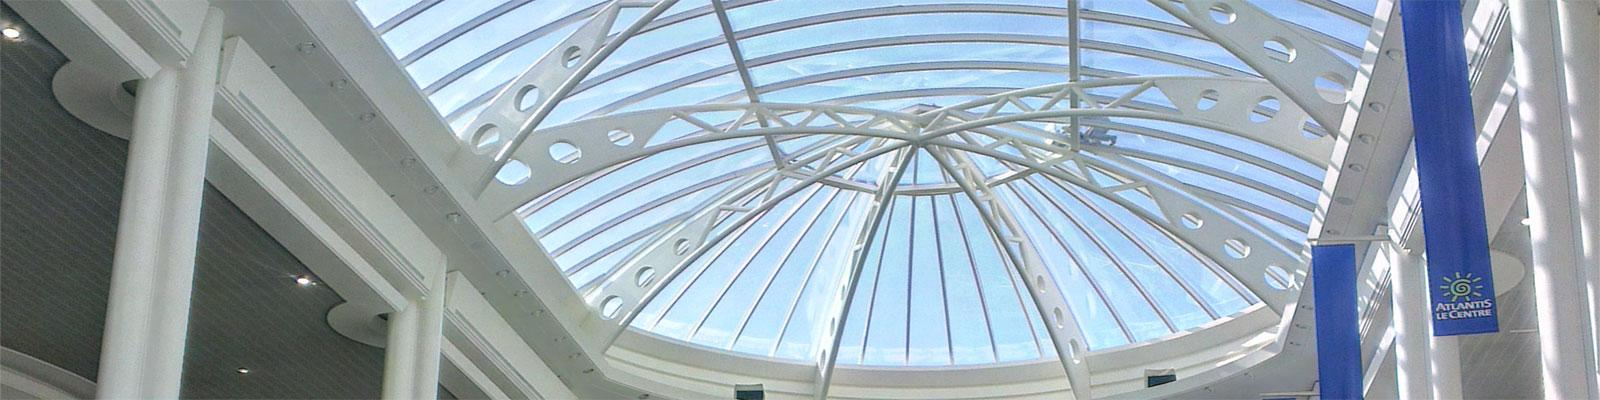 Project-PC-Rooflight1i